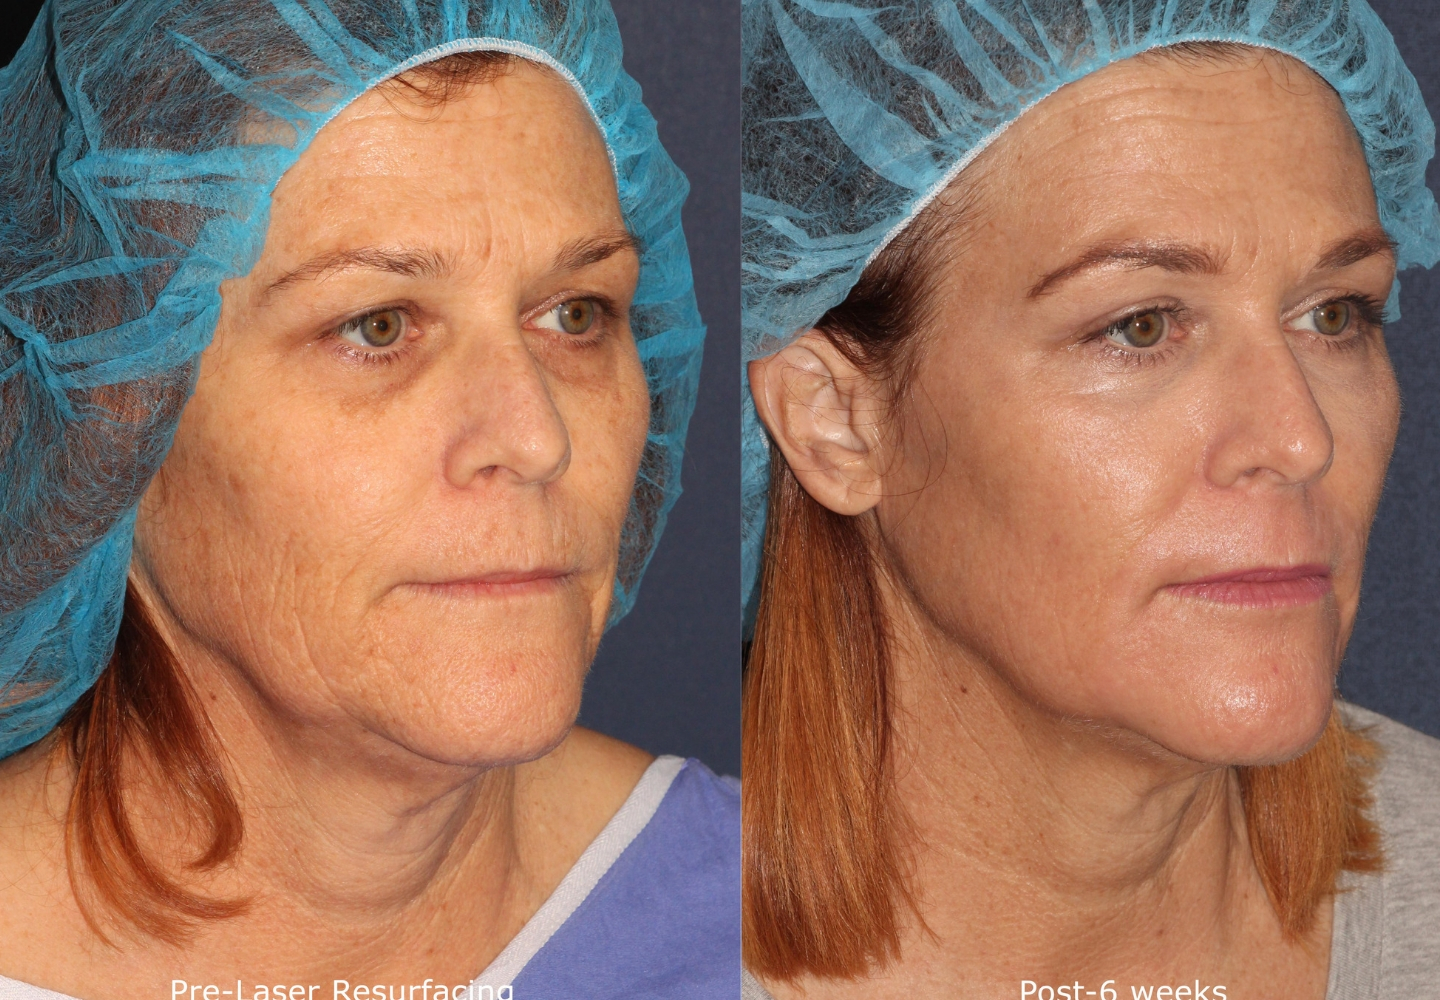 Actual un-retouched patient before and after laser resurfacing for facial rejuvenation by Dr. Fabi. Disclaimer: Results may vary from patient to patient. Results are not guaranteed